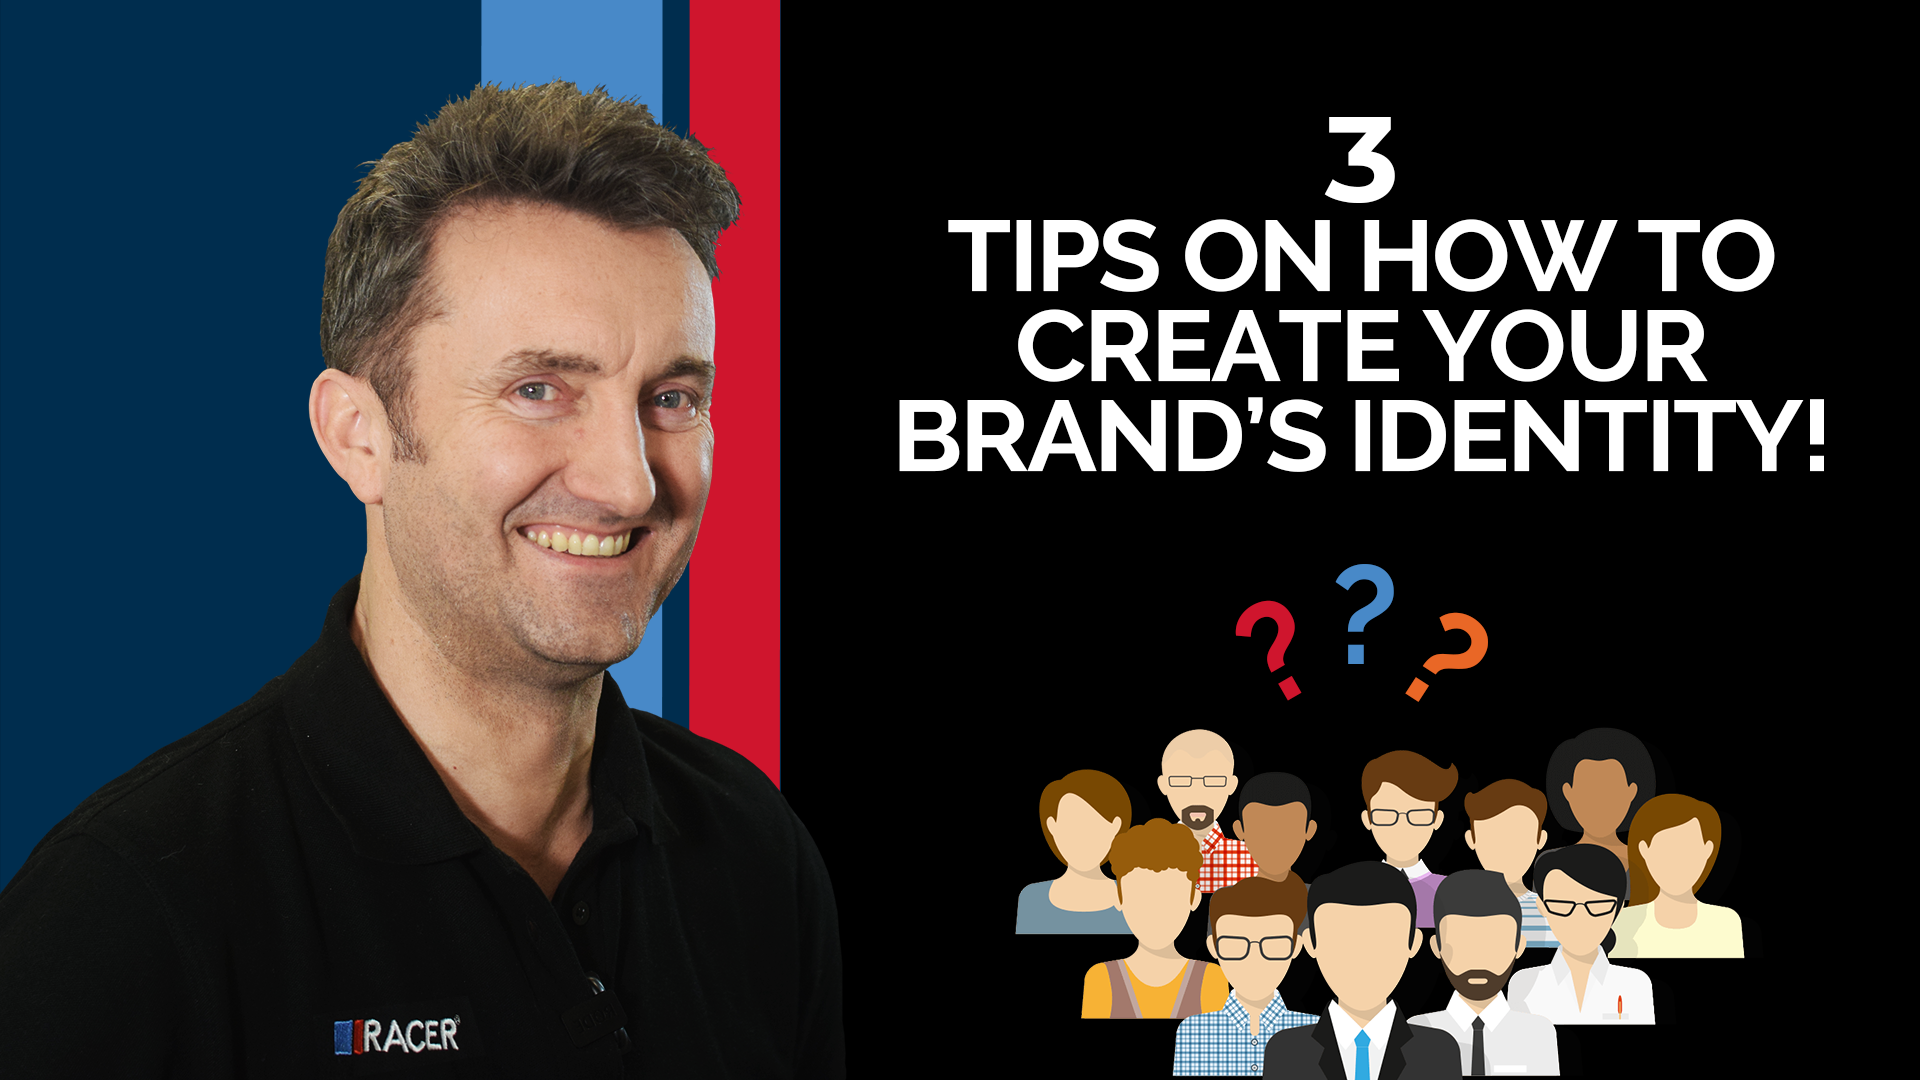 3 Tips on How to Create Your Brand's Identity!